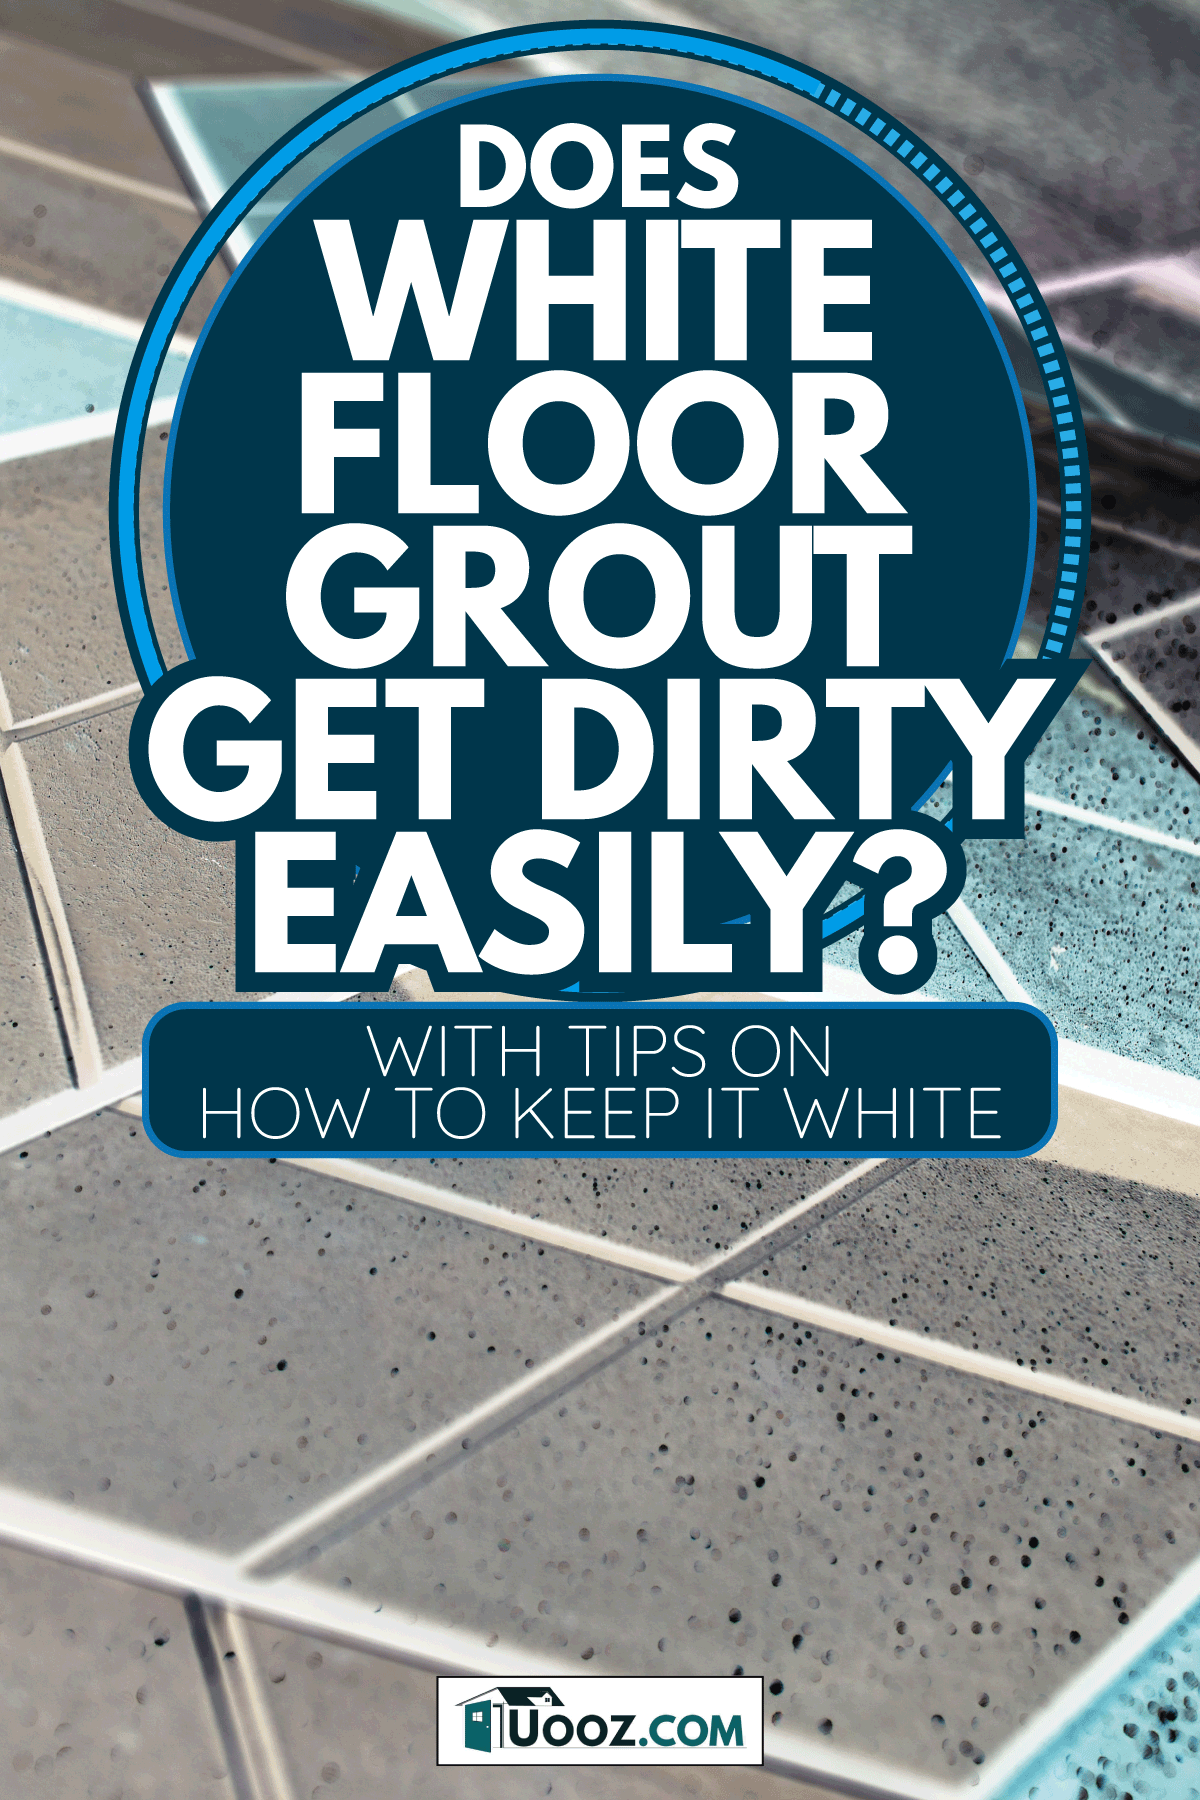 cube style paving tile on floor with white grout. Does White Floor Grout Get Dirty Easily [With Tips On How To Keep It White]